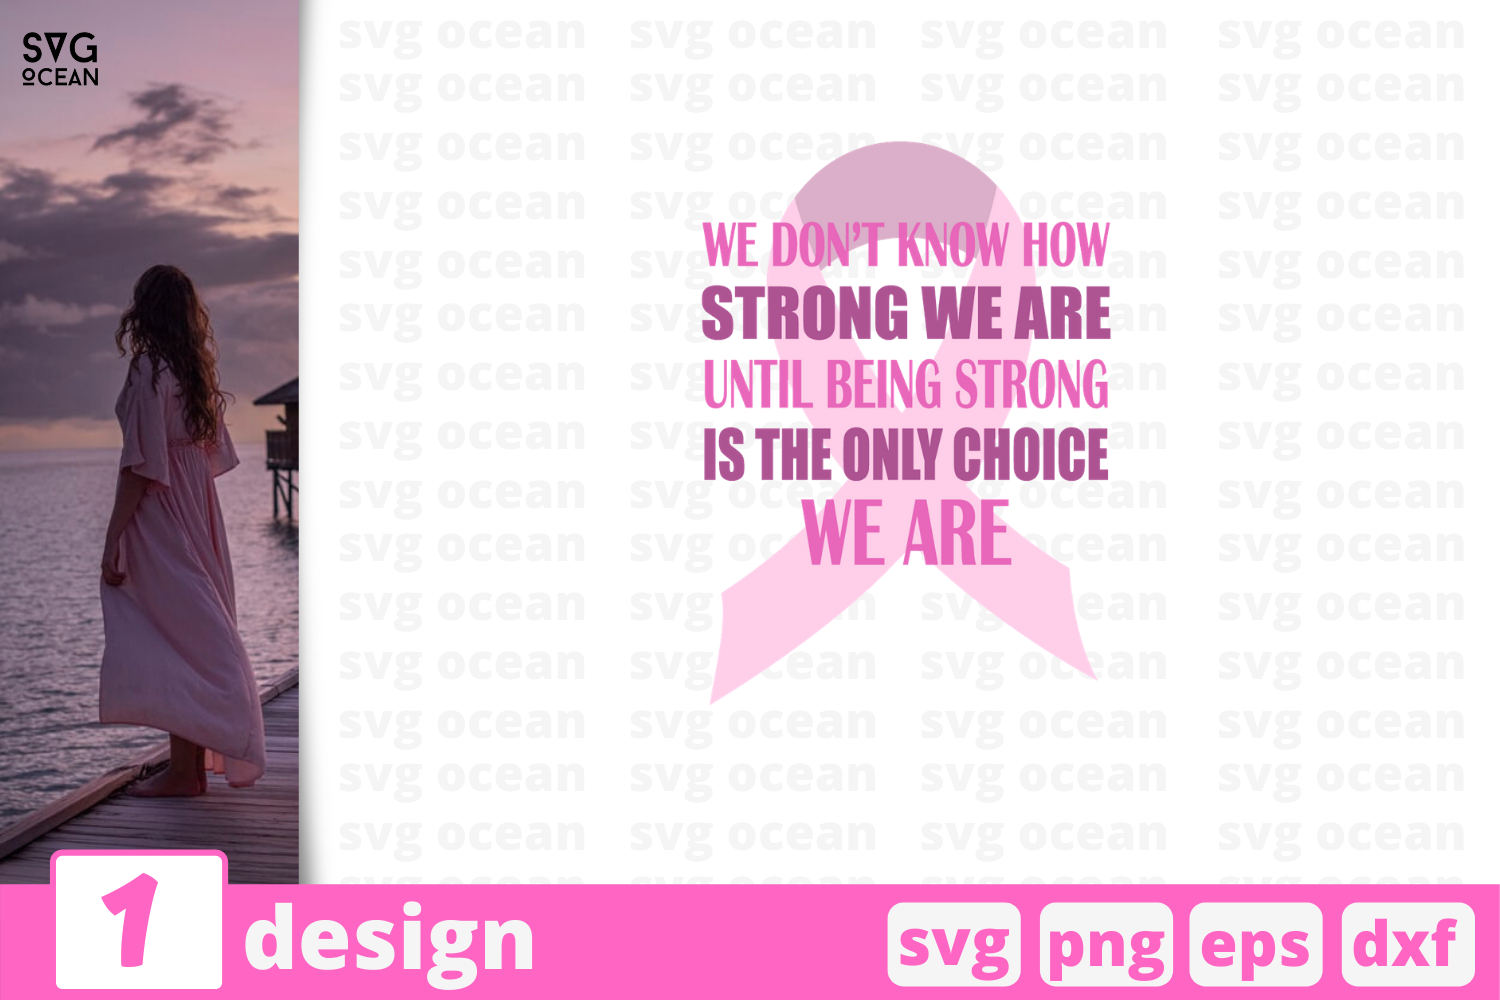 Download Free We Are Quote Graphic By Svgocean Creative Fabrica for Cricut Explore, Silhouette and other cutting machines.